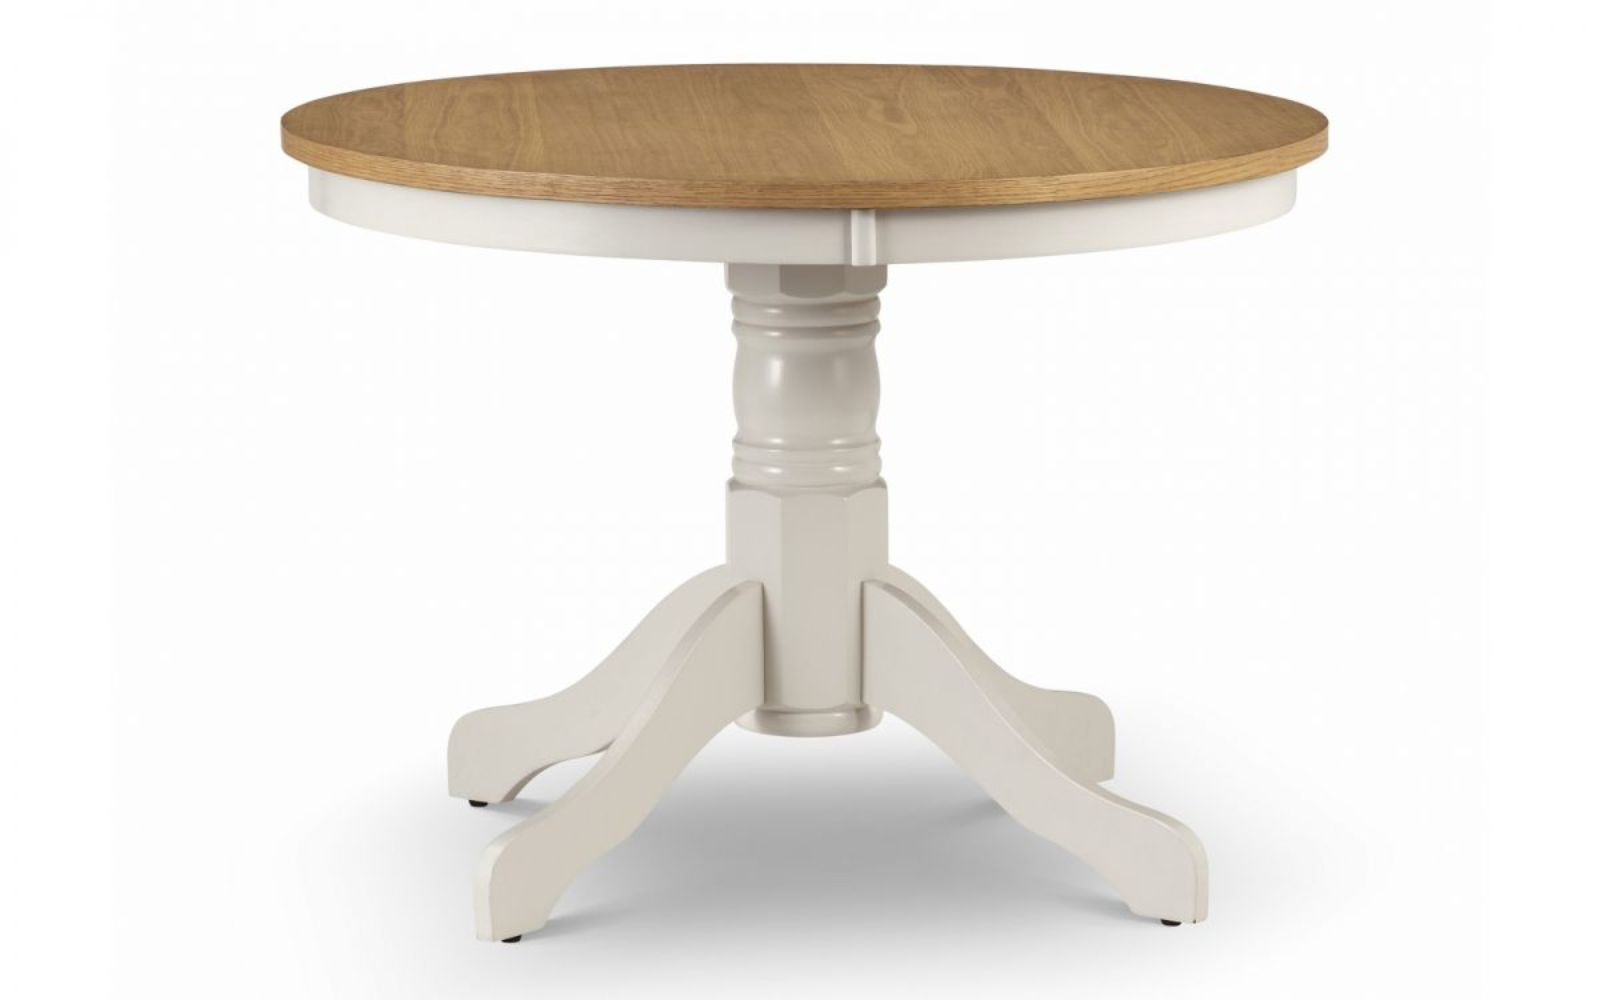 Davenport Round Pedestal Table (106cm Diameter)